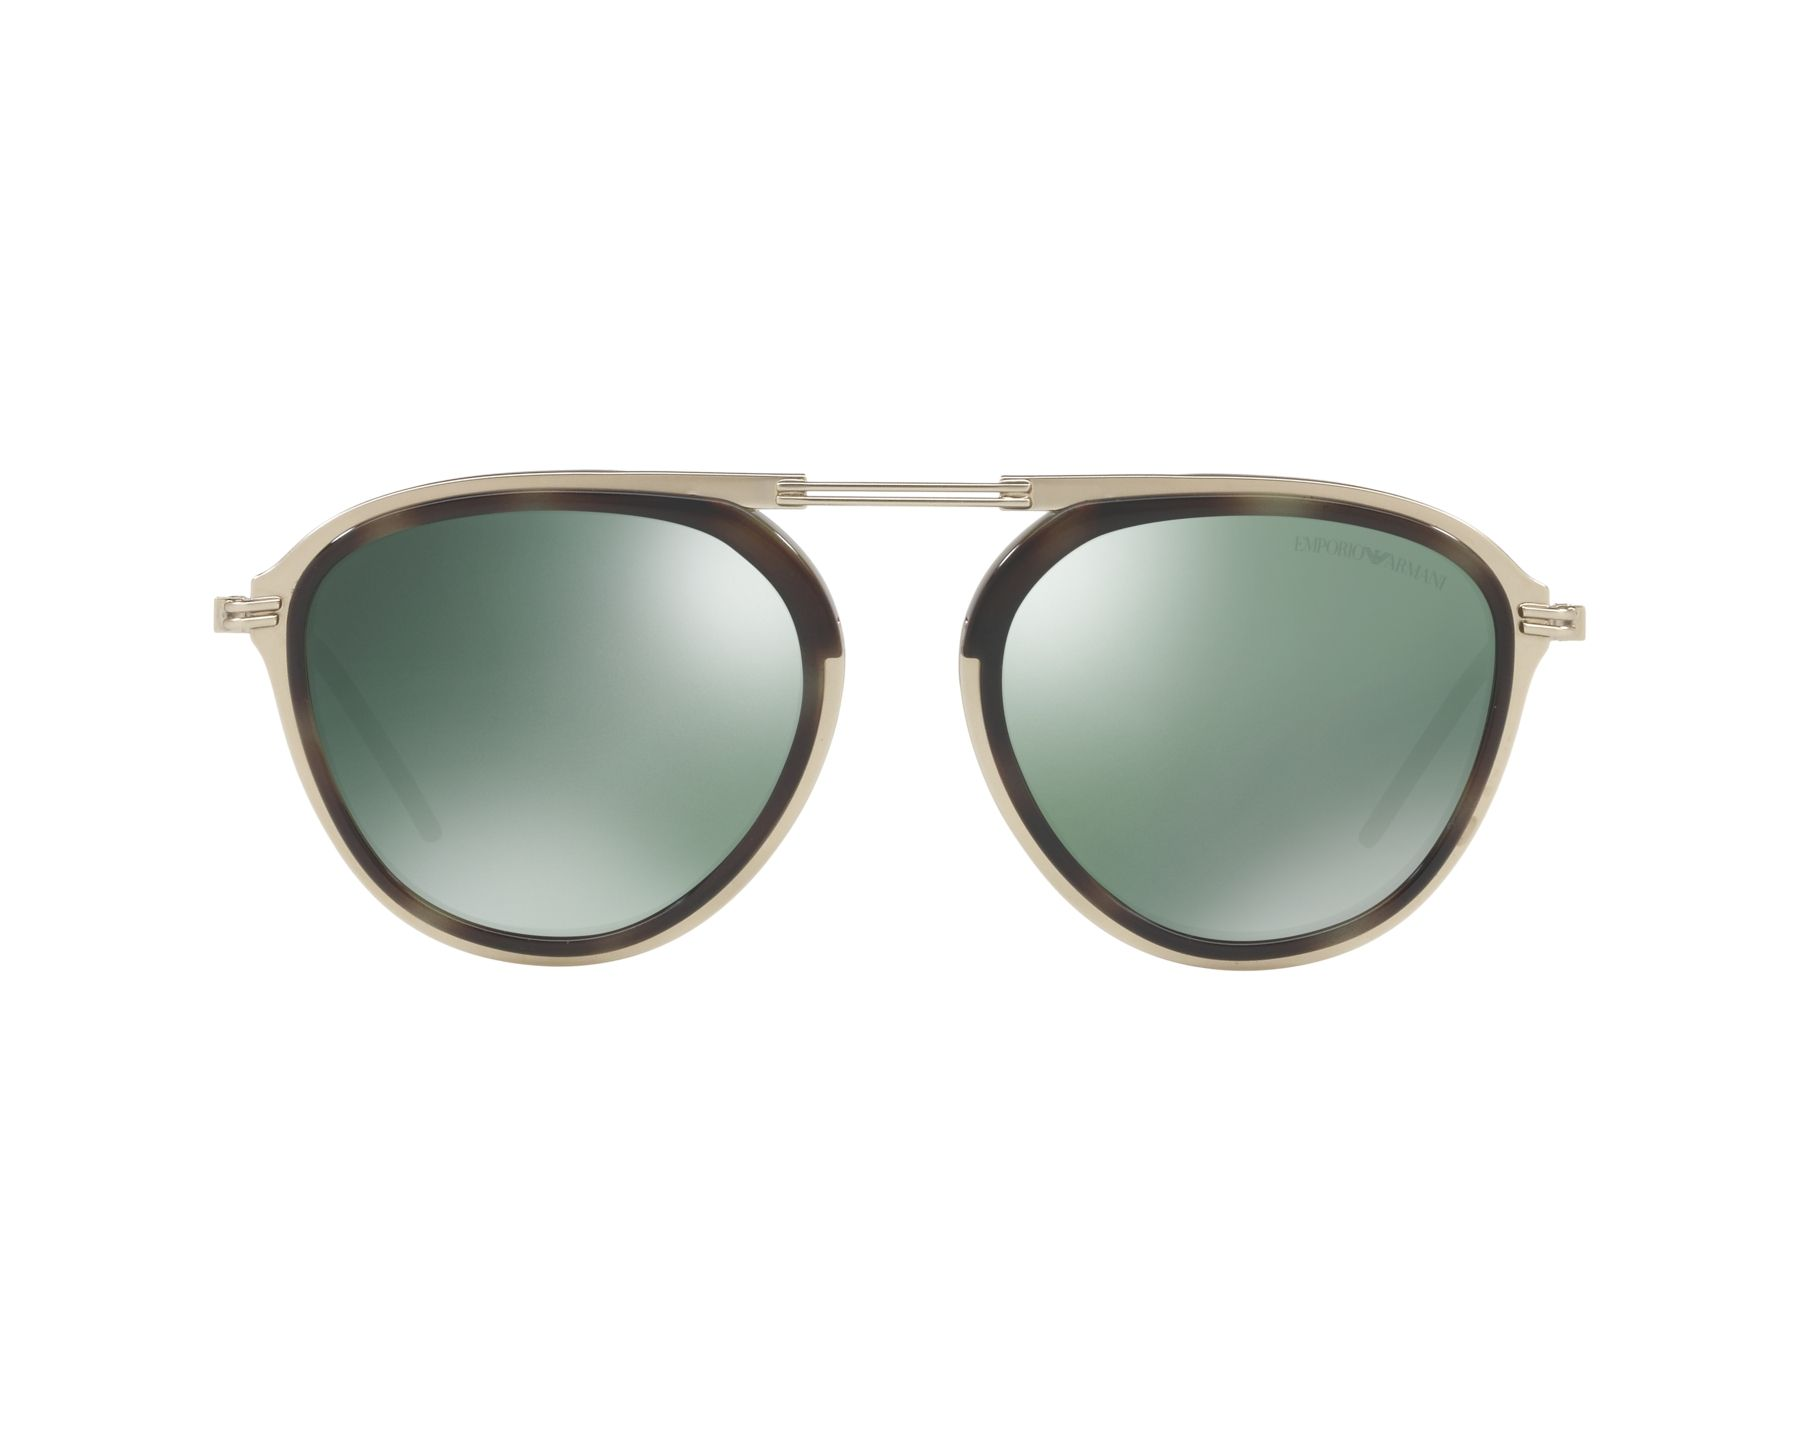 23f6f6e946fa Sunglasses Emporio Armani EA-2056 30026R 54-19 Gold Green 360 degree view 1